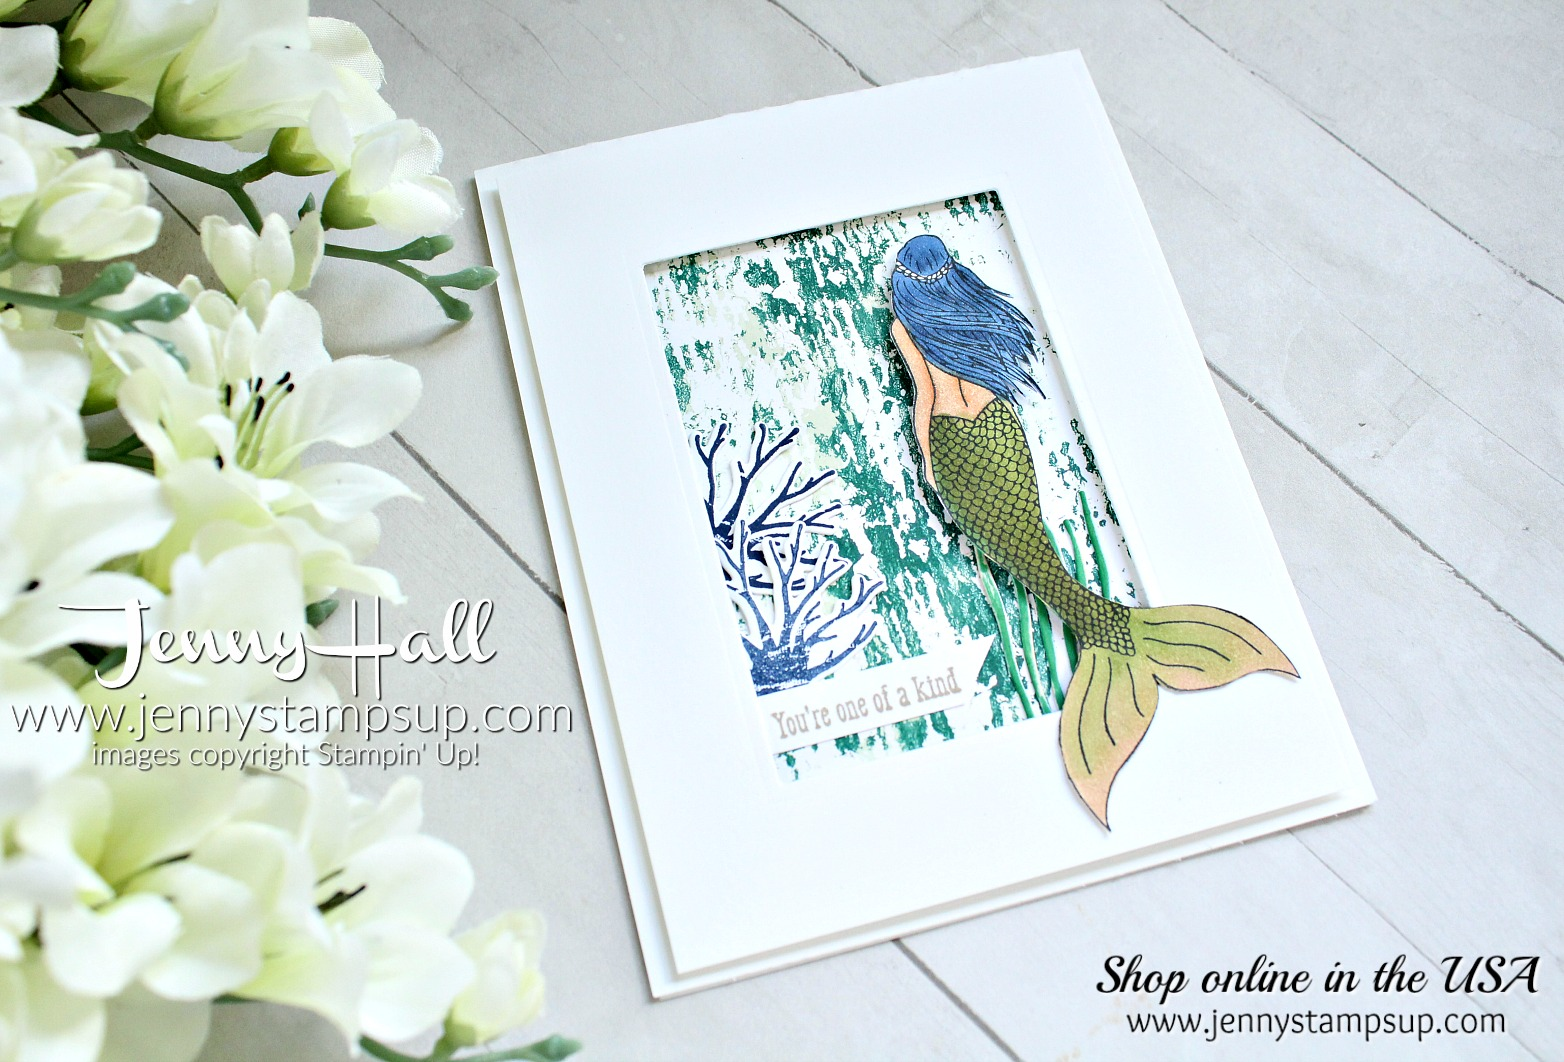 Sea of Textures Bundle with Magical Mermaid stamp set created by Jenny Hall at www.jennyhalldesign.com for #cardmaking #stamping #diy #handmade #stampinblends #seaoftextures #mermaid #jennyhall #jennyhalldesign #jennystampsup #youtuber #papercrafts #crafts #bluehair #stampinup